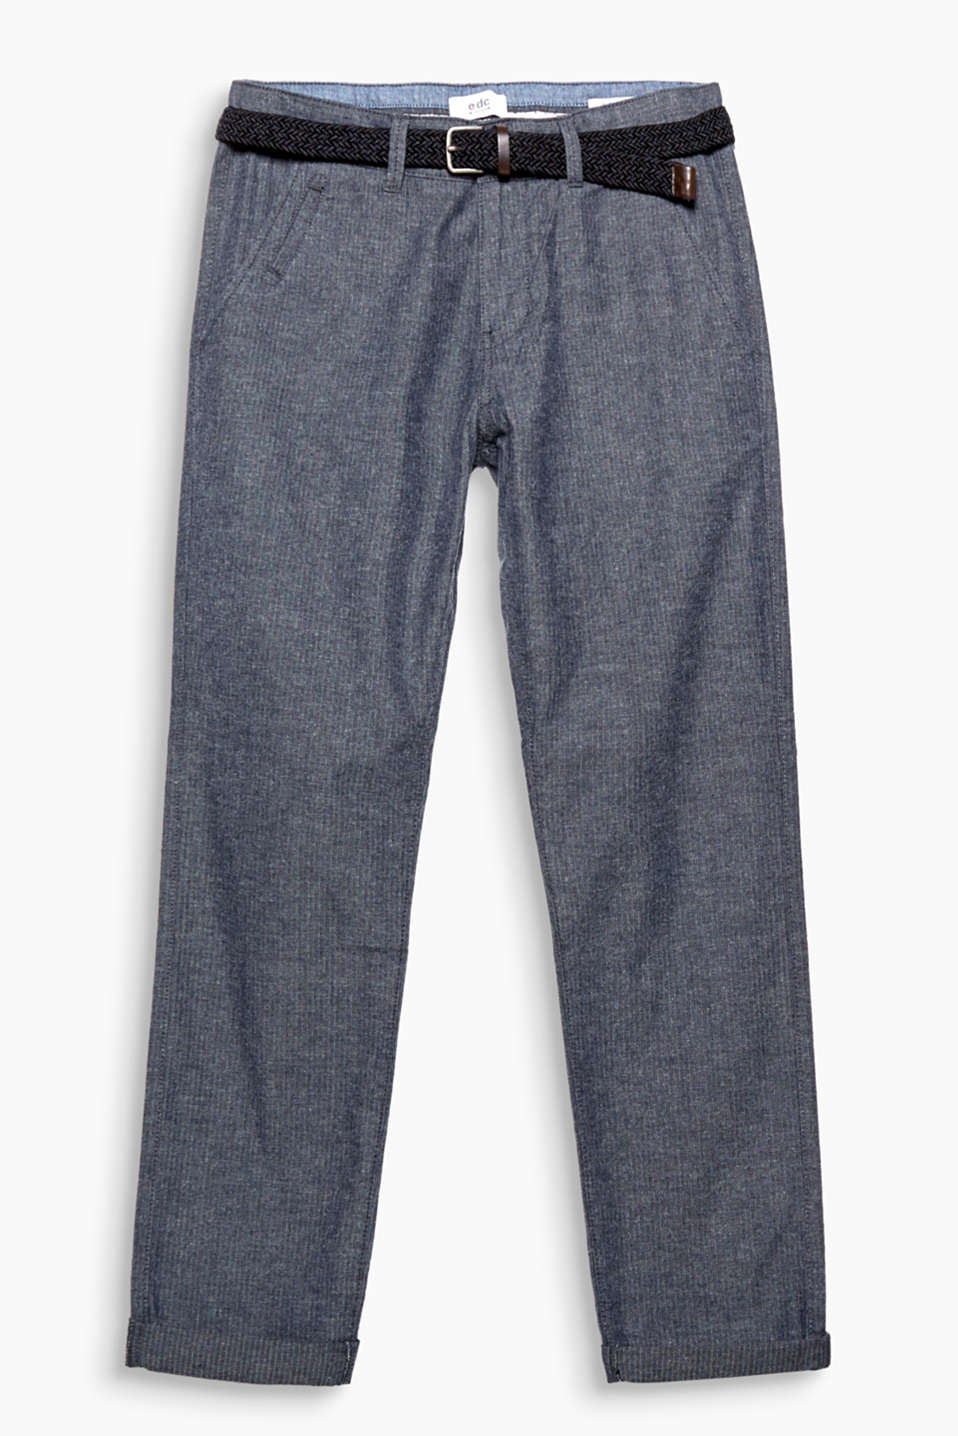 A casual style favourite! These trousers stun with a herringbone pattern and a stylish woven belt.